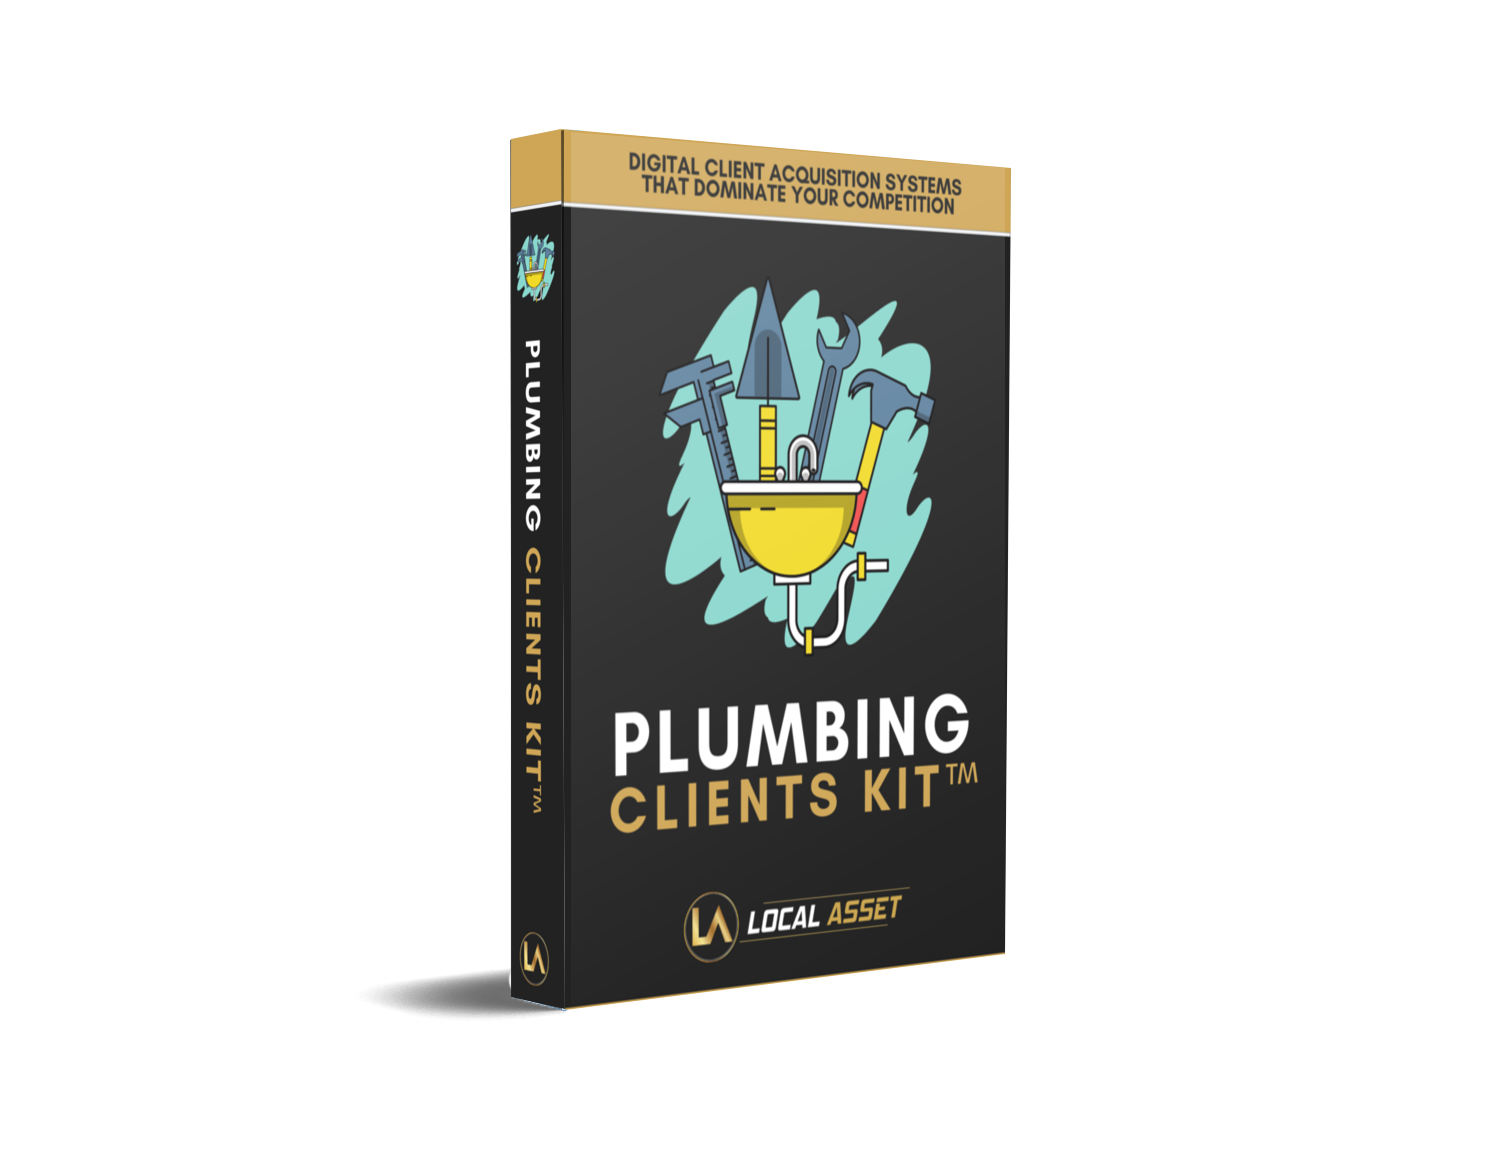 Digital Marketing Agency -Services for Plumbing Companies & Plumbers